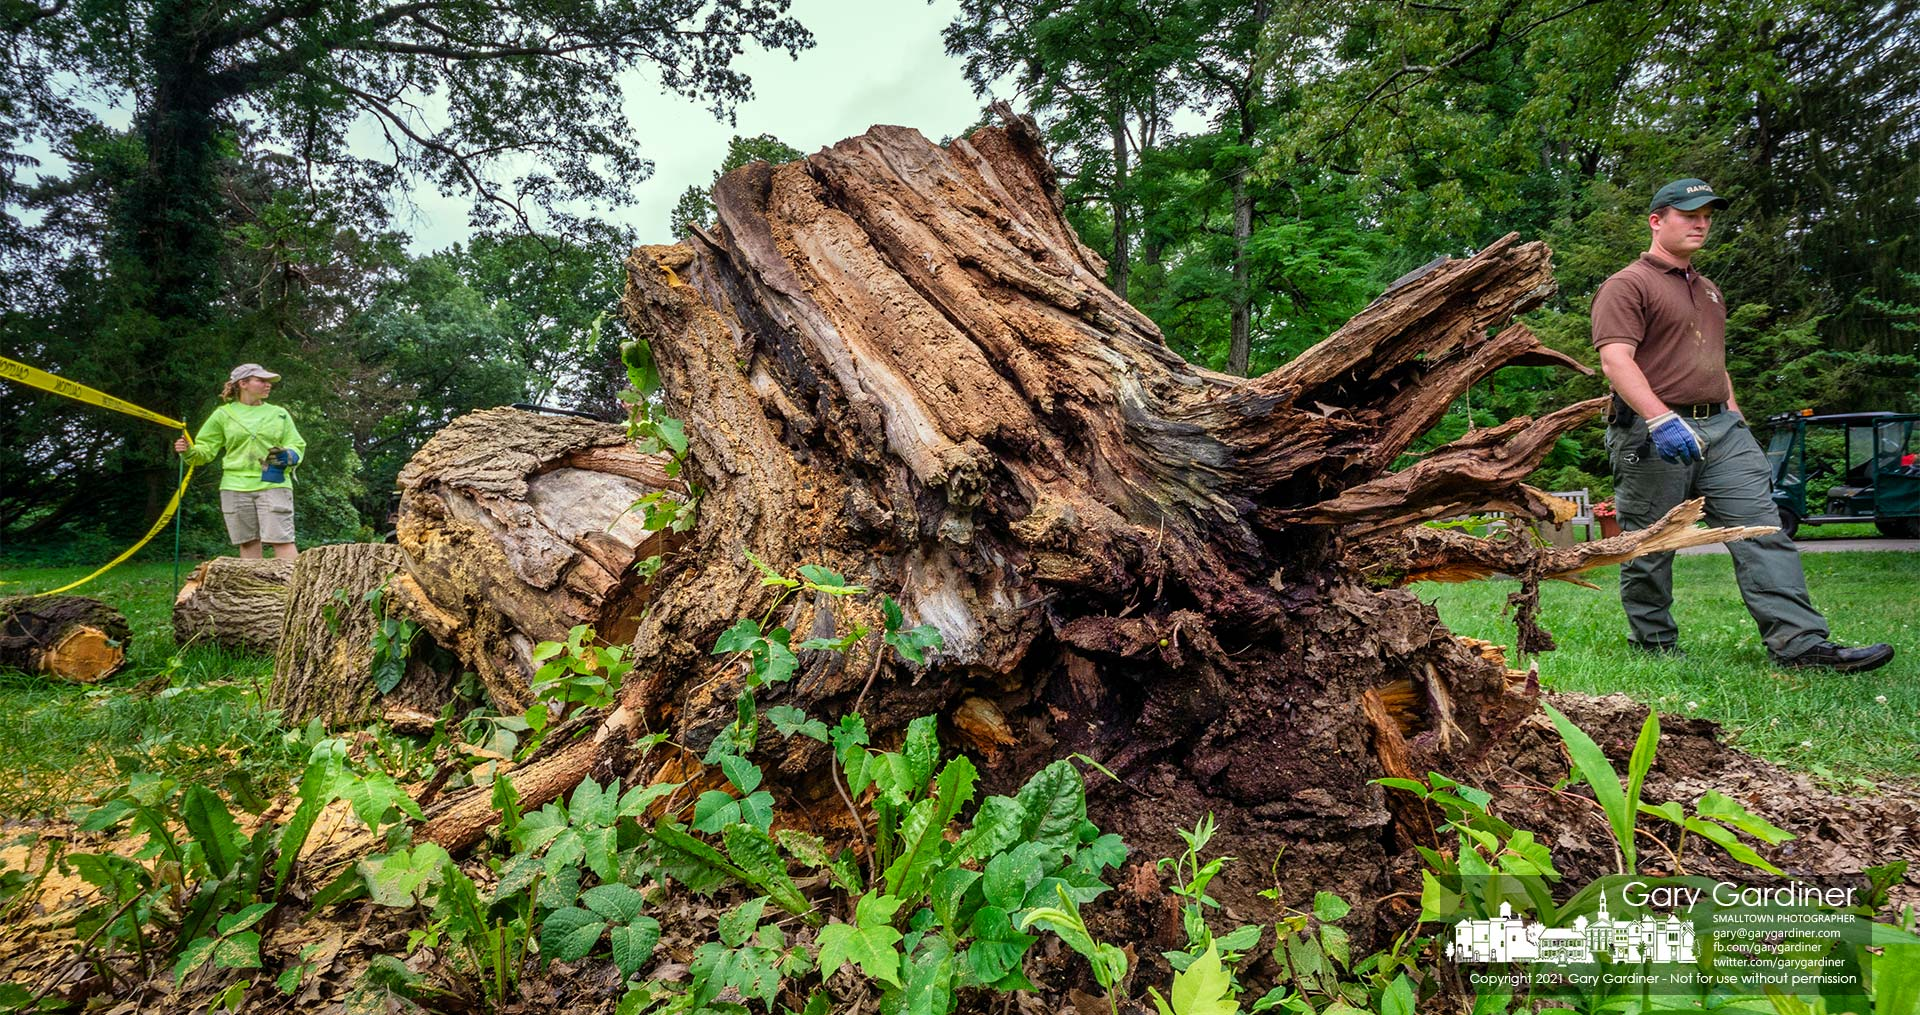 Workers clear debris from a mulberry tree after it fell and was cut into sections on greenspace at Inniswood Metro Gardens. My Final Photo for July 17, 2021.